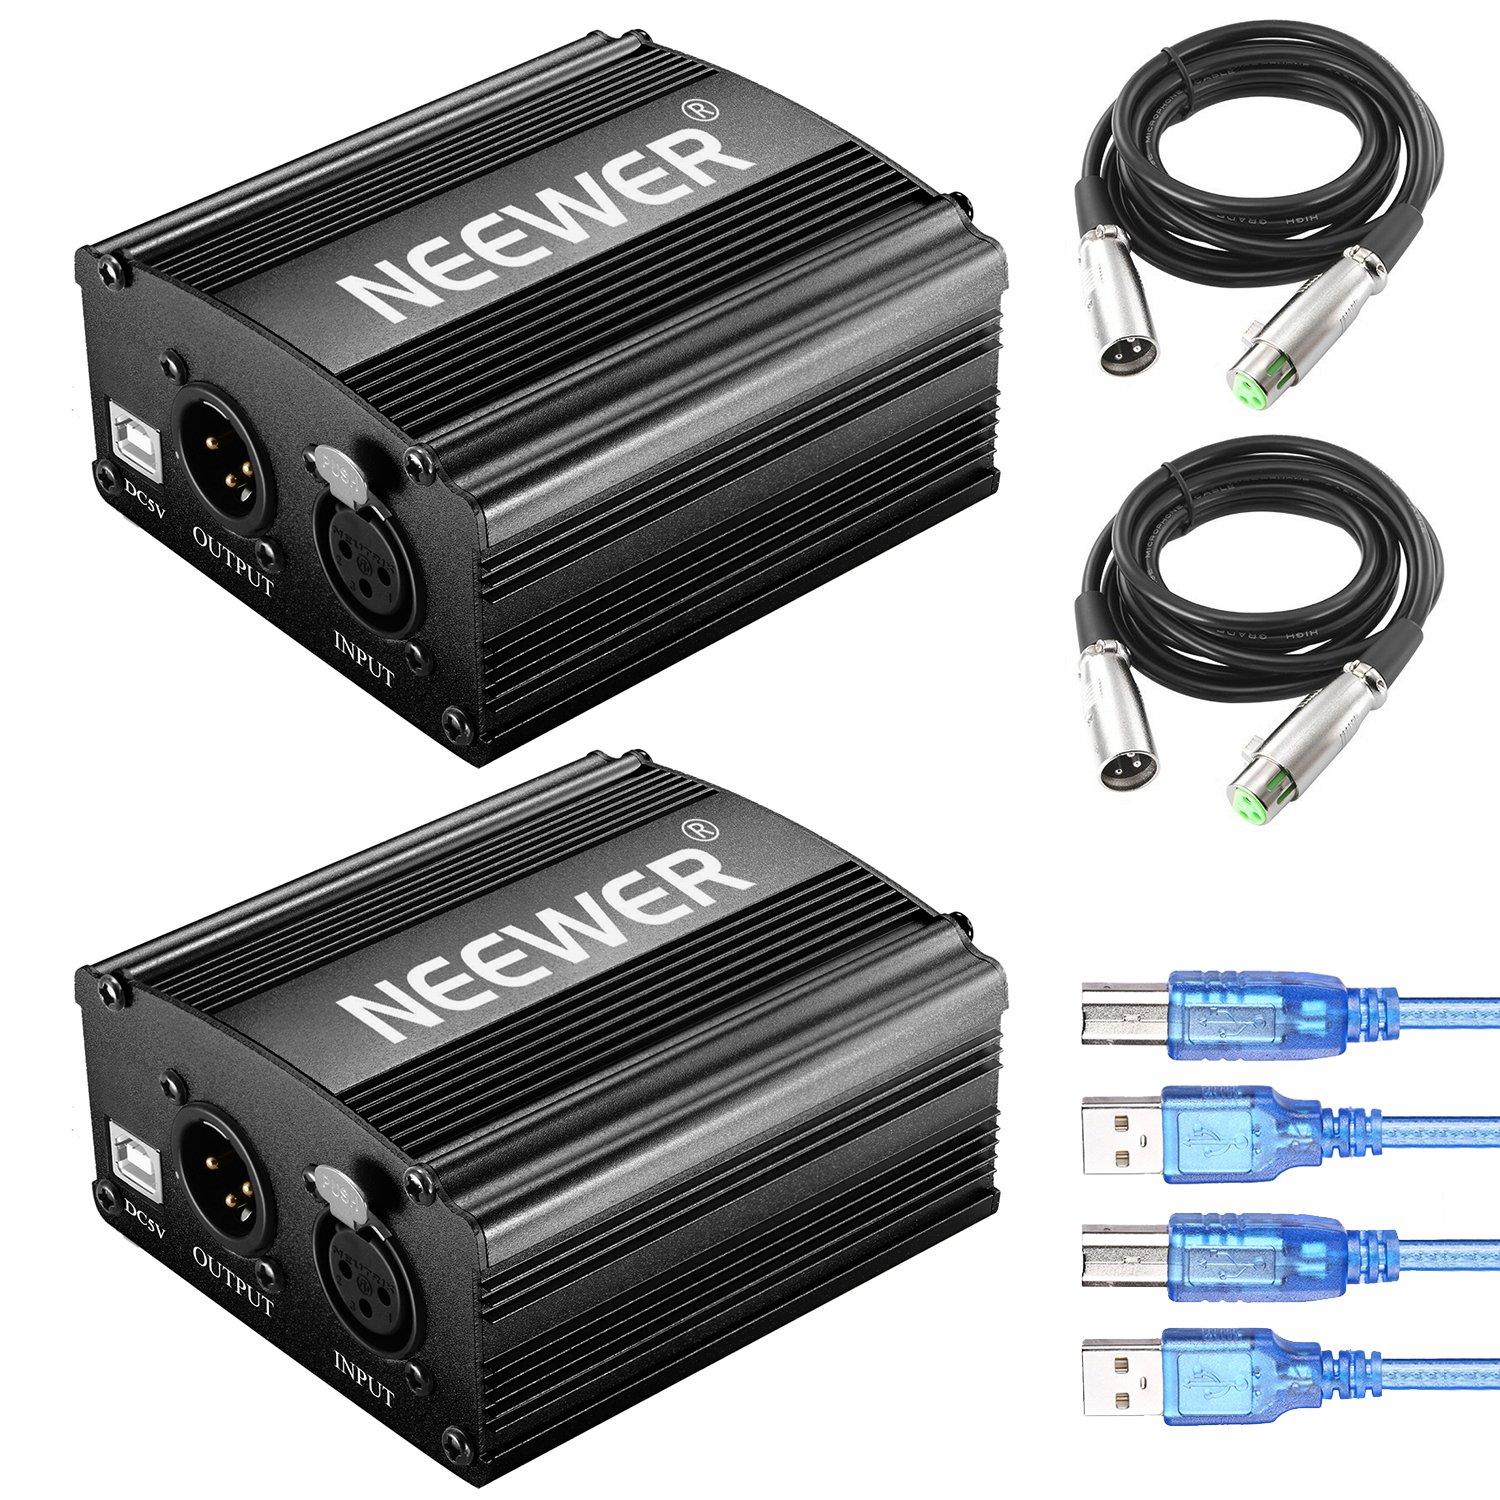 Neewer 2 Packs 1-Channel 48V Phantom Power Supply with 5 feet USB Cable, XLR 3 Pin Male to female Microphone Cable for Any Condenser Microphone Music Recording Equipment by Neewer